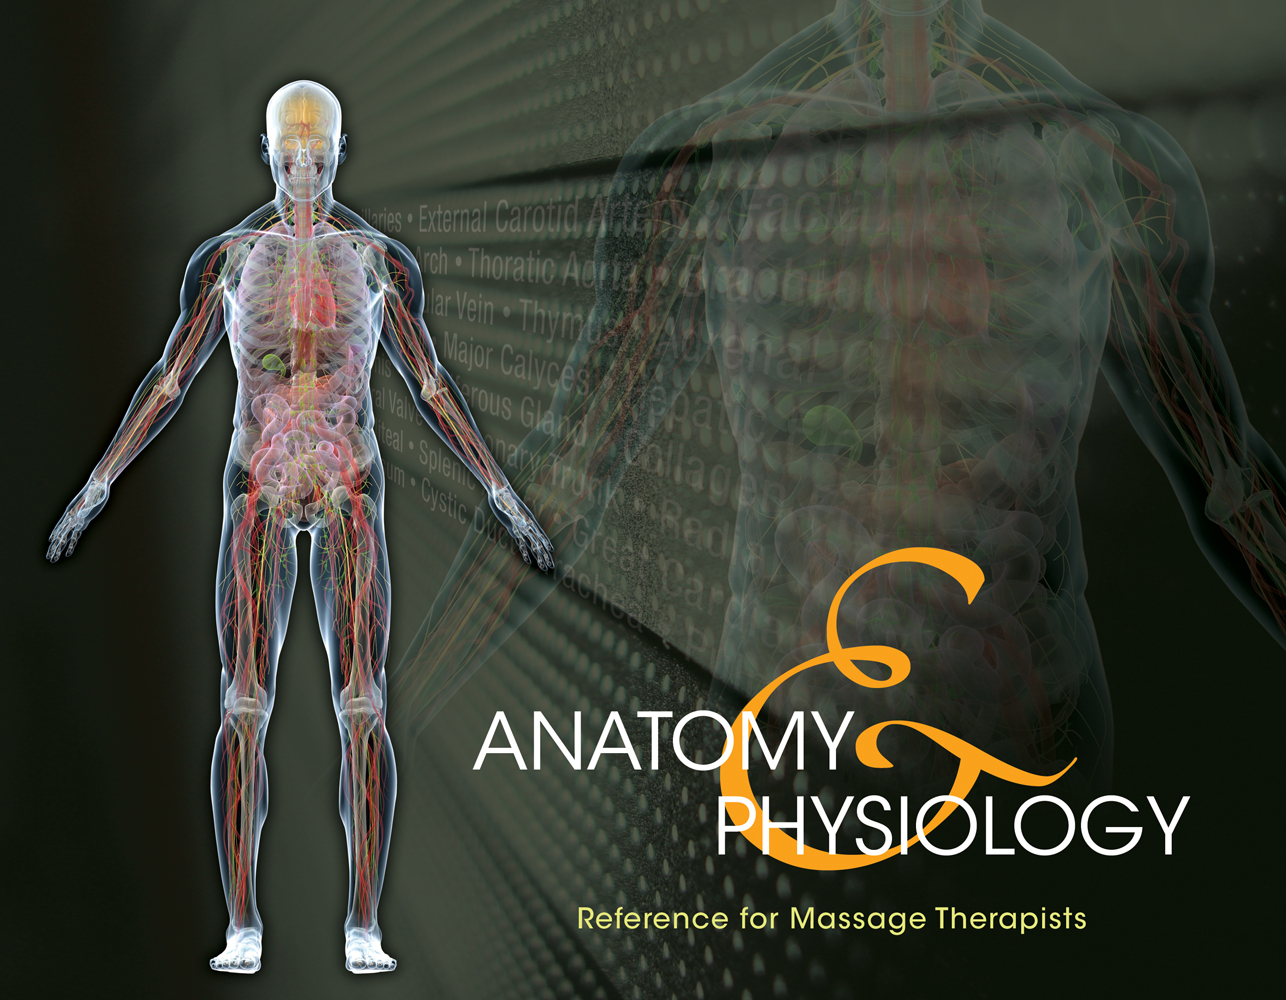 Anatomy & Physiology Reference for Massage Therapists, Spiral bound Version - 9781133704126